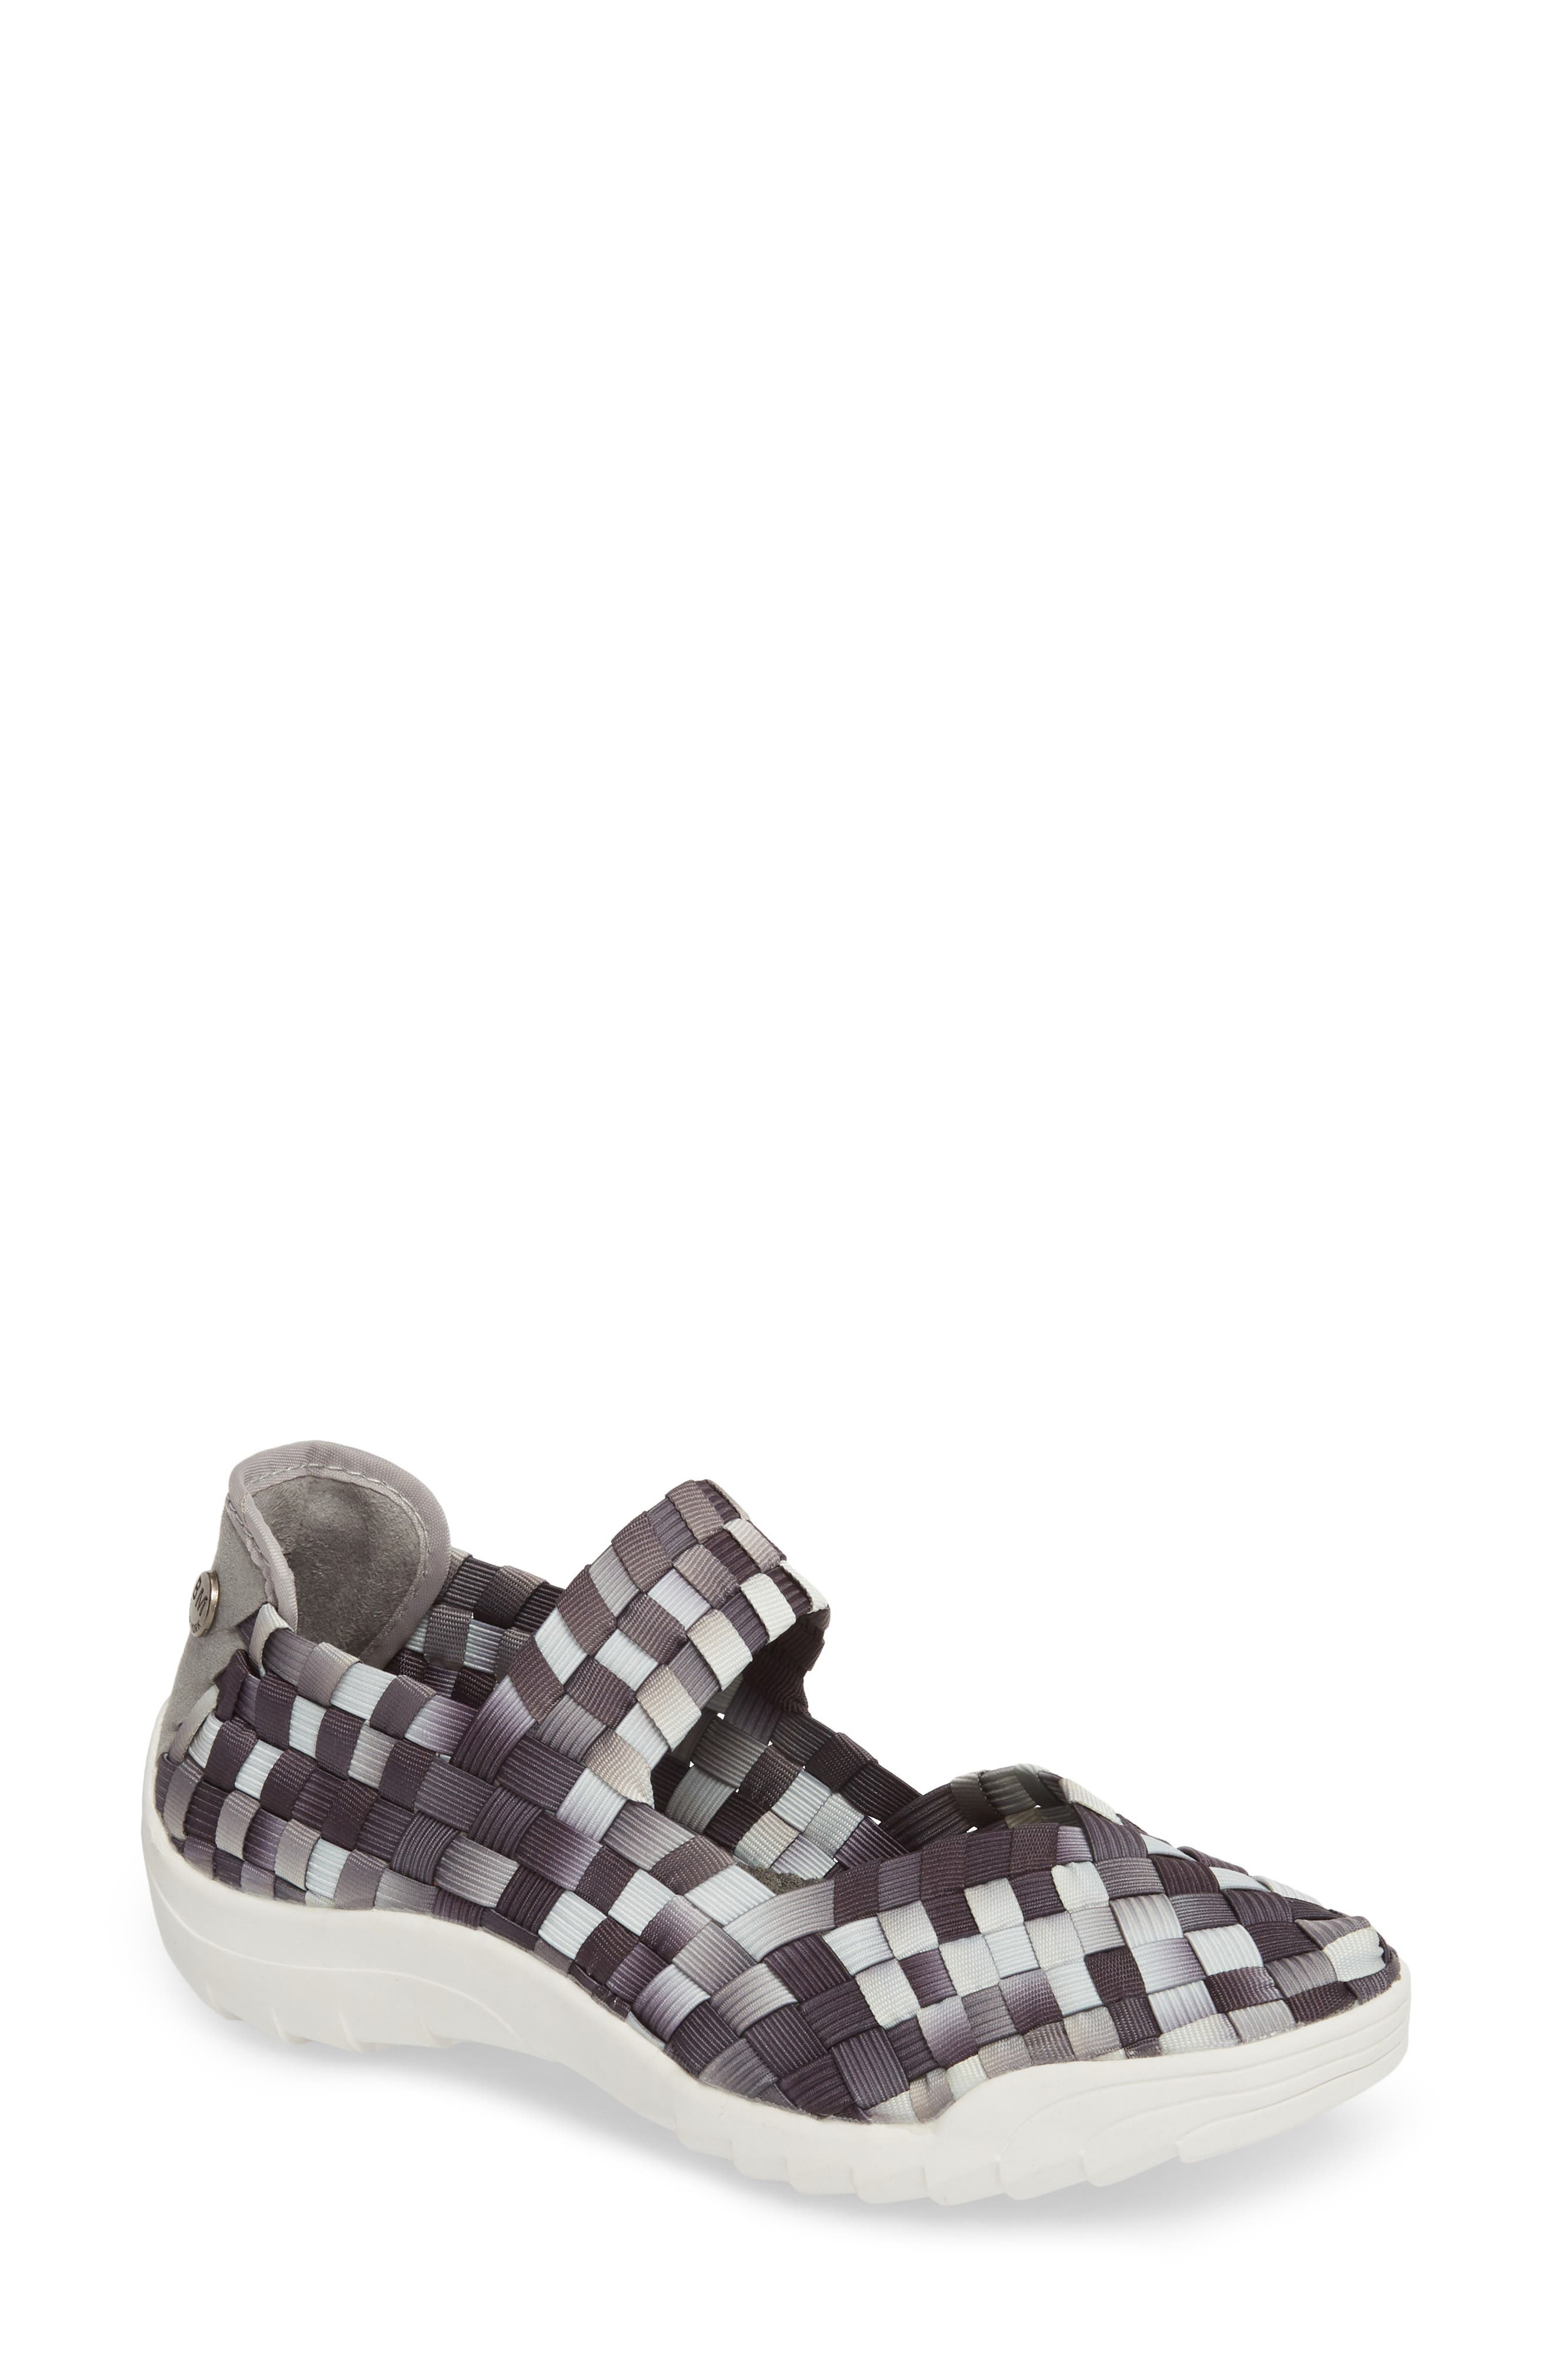 Rigged Charm Sneaker,                             Main thumbnail 1, color,                             GREY OMBRE